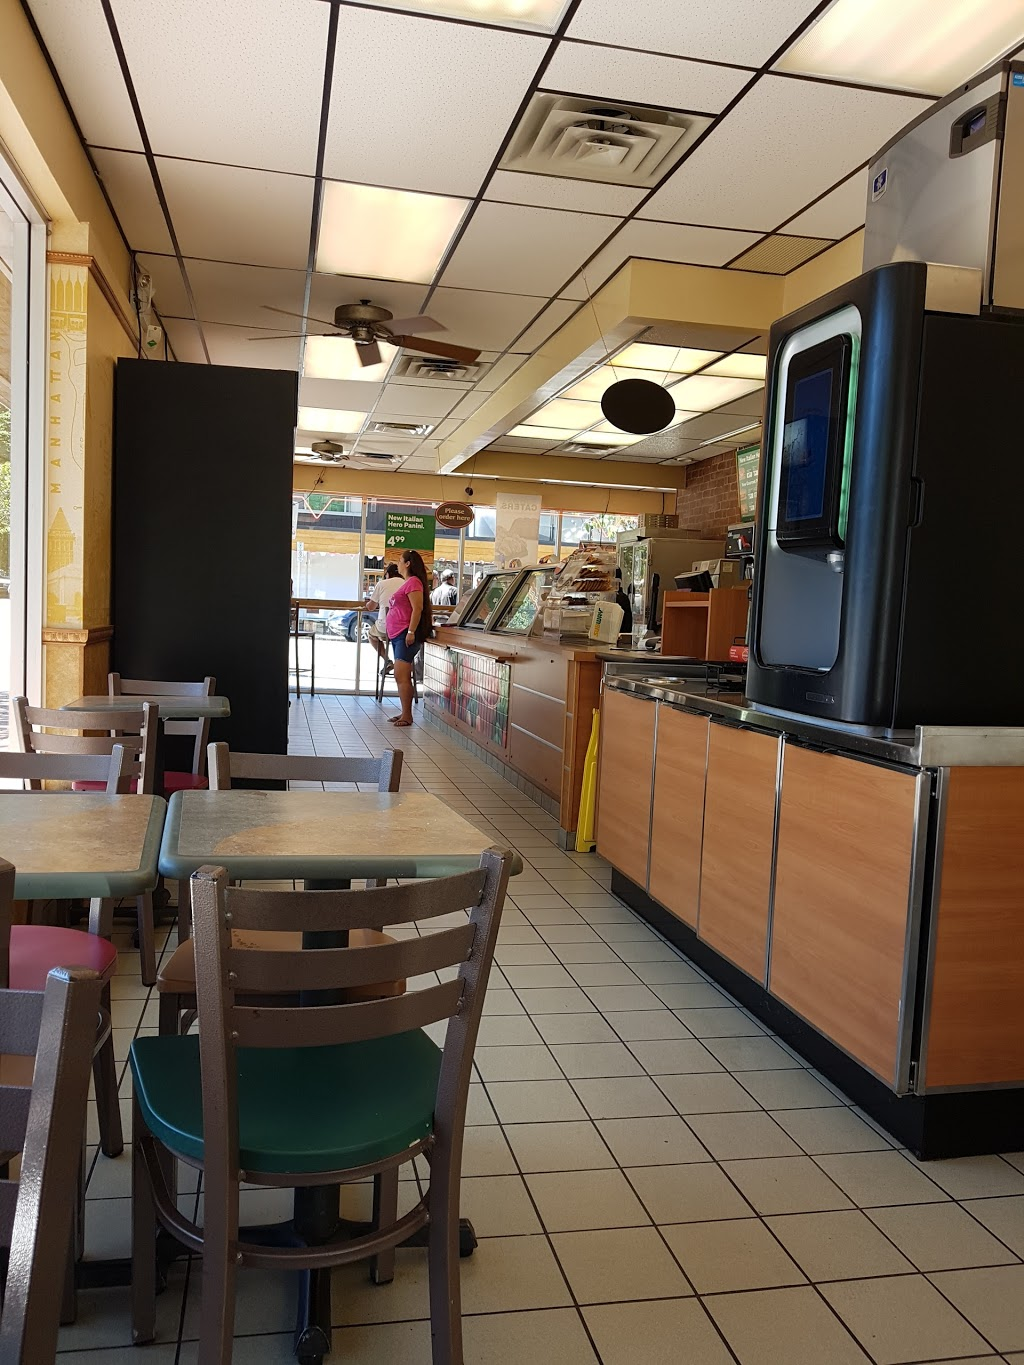 Subway | restaurant | 6610 Royal Ave, West Vancouver, BC V7W 2B9, Canada | 6049216789 OR +1 604-921-6789